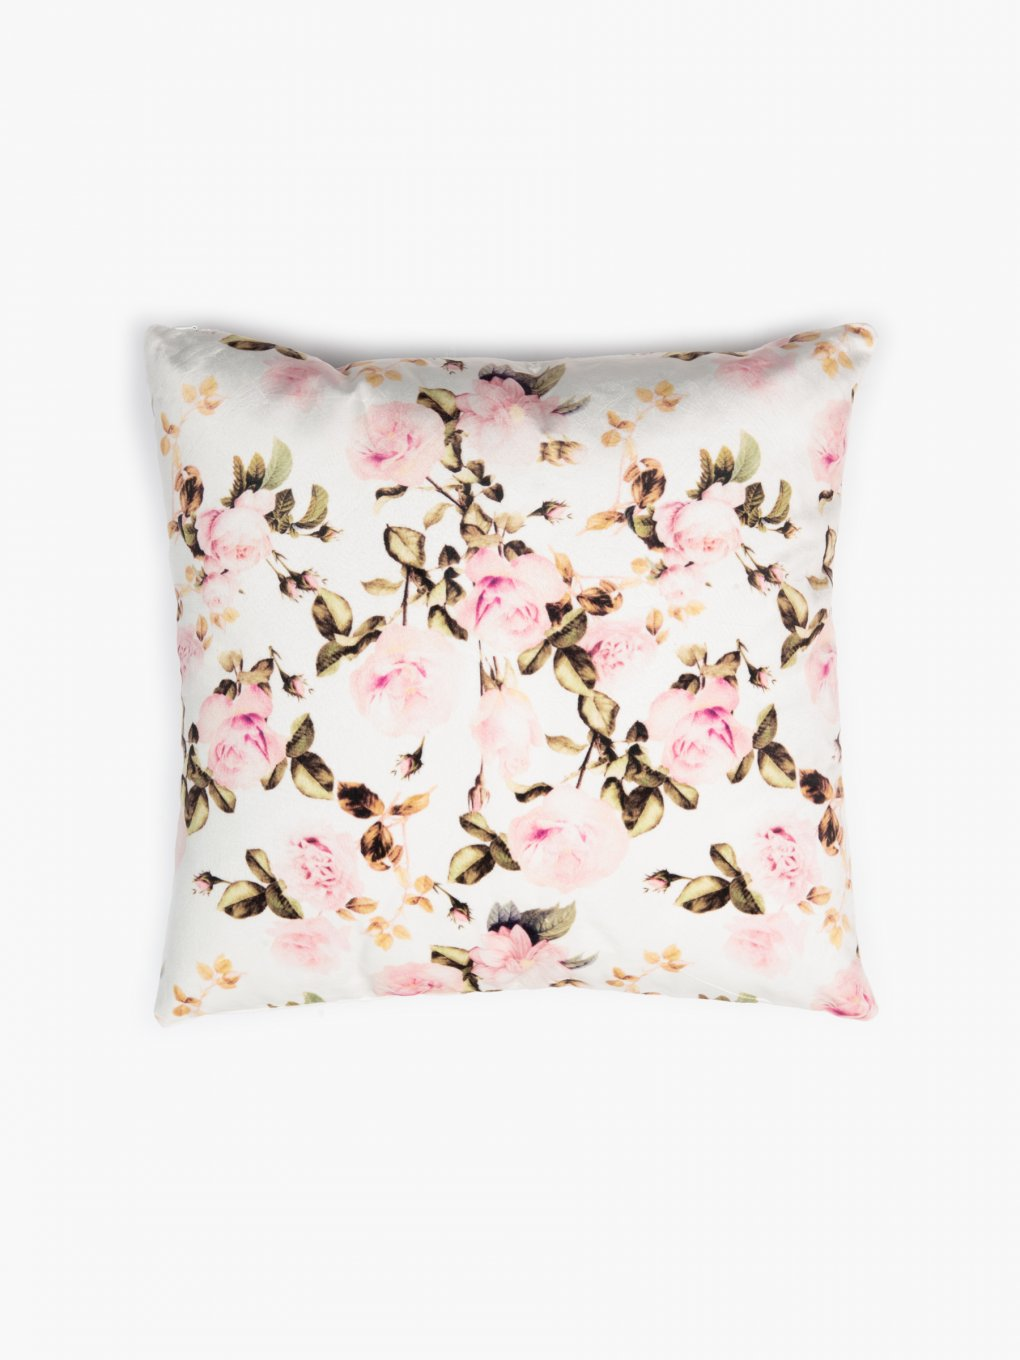 Flower print pillow